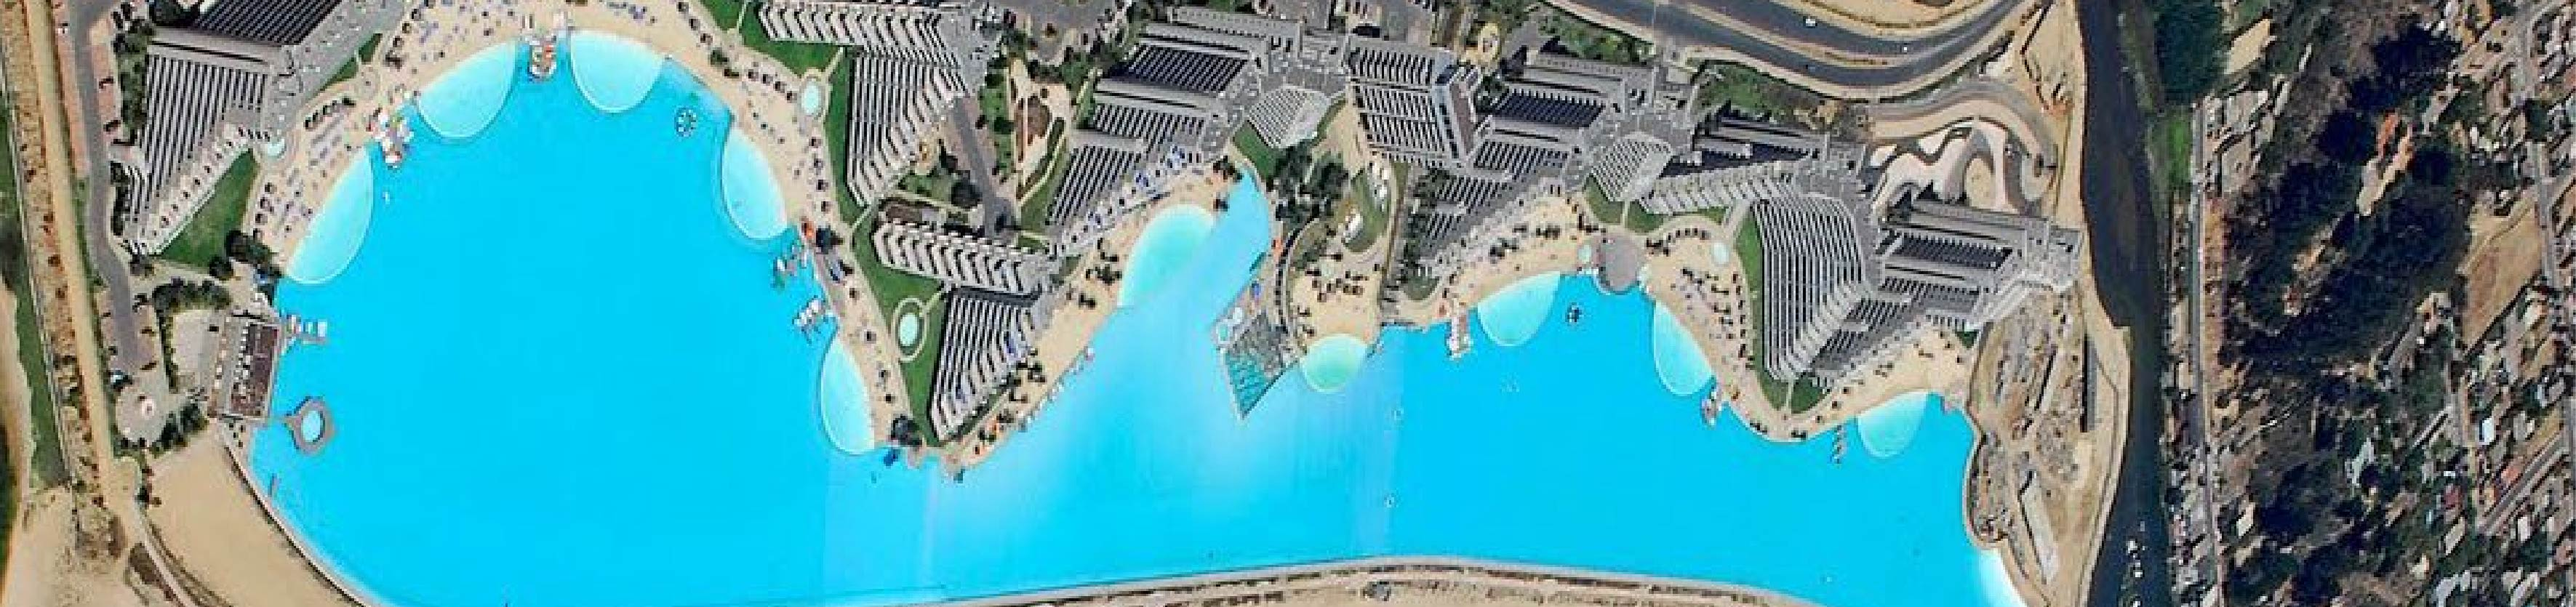 Largest Pools in the World: Discover the largest 8 pools around the world